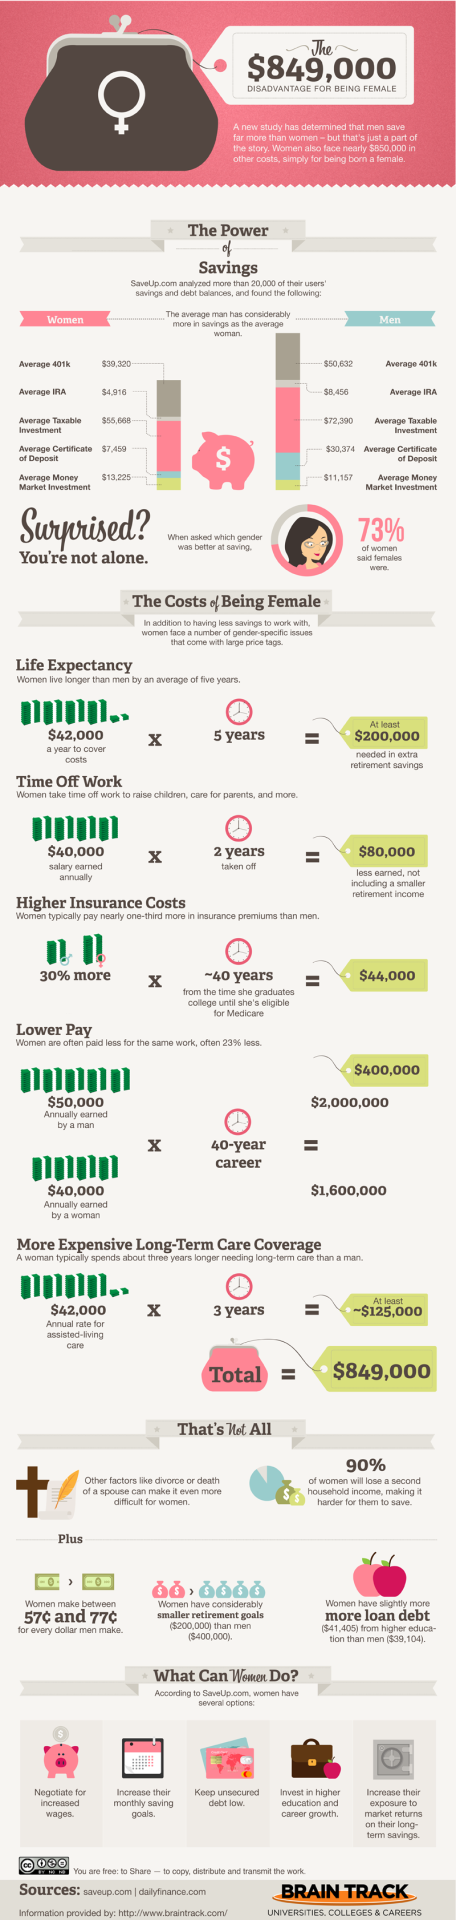 The cost of being a woman. Thanks to BrainTrack.